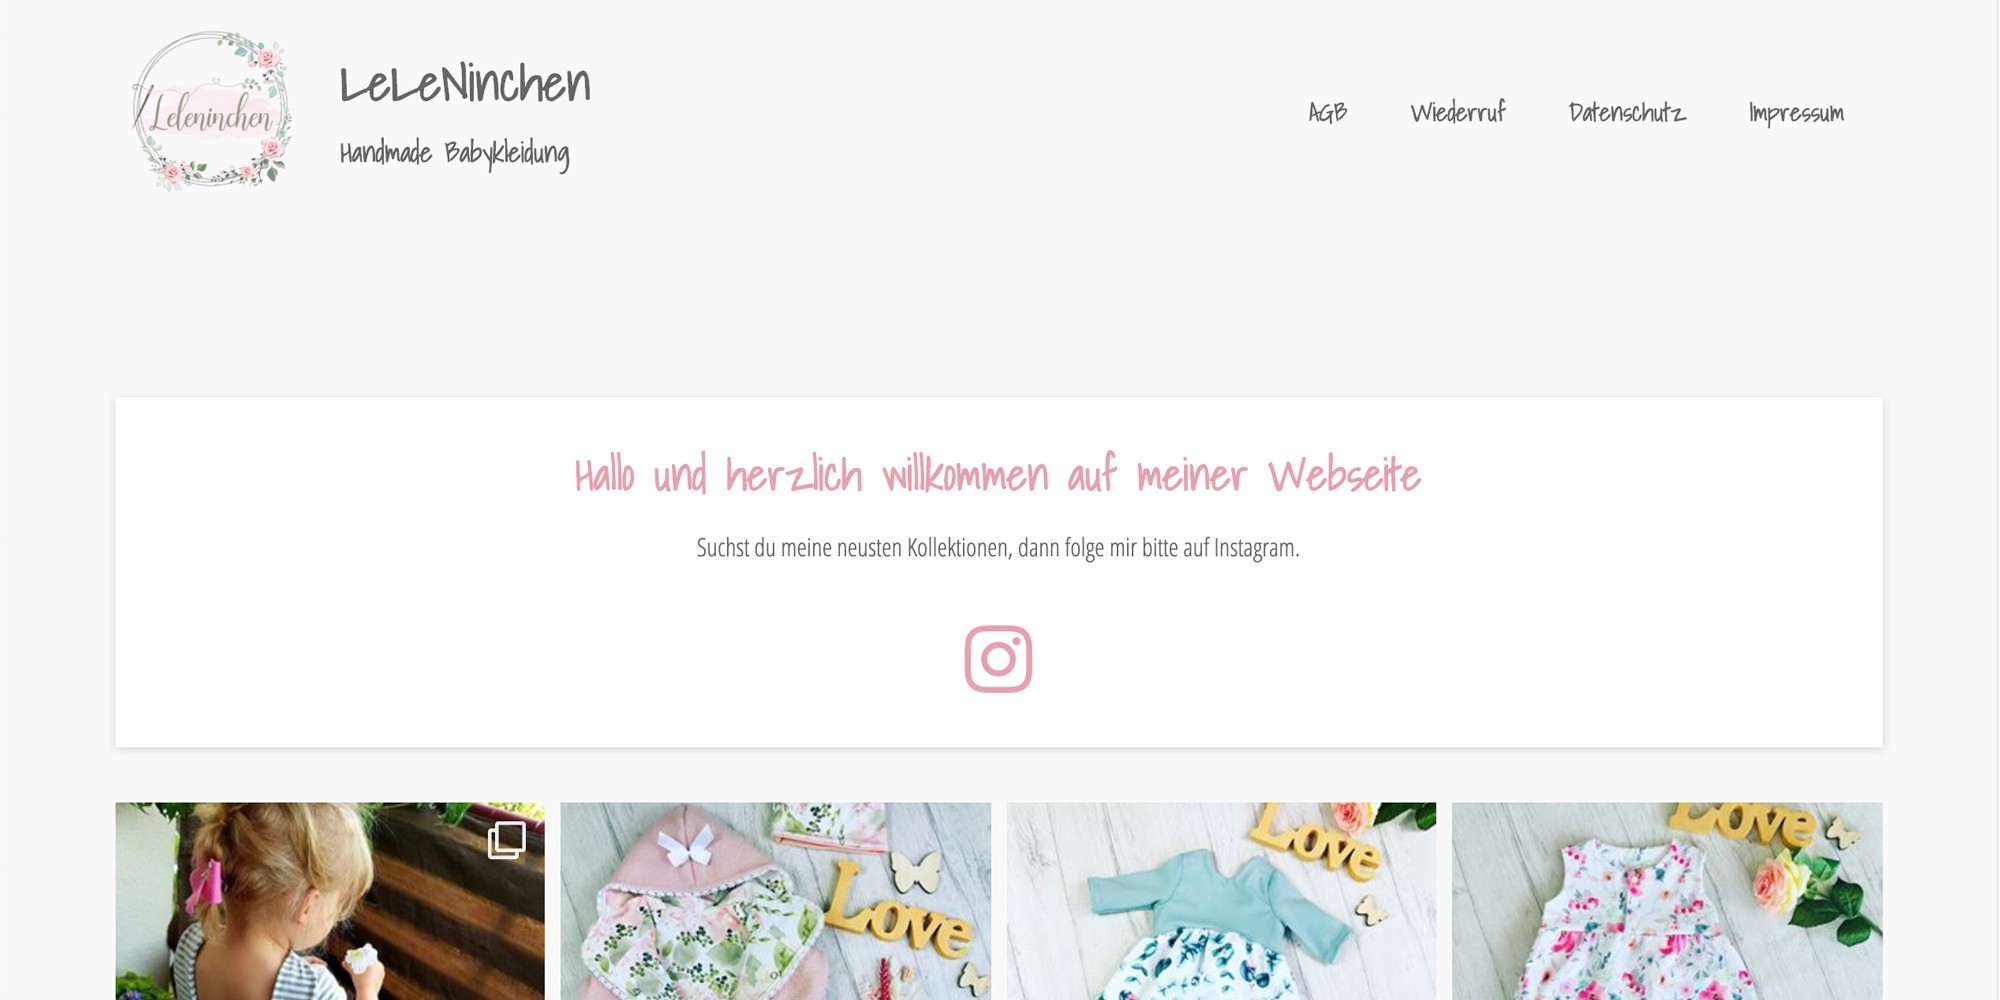 Merlin Rose Webdesign Referenzen - Leleninchen